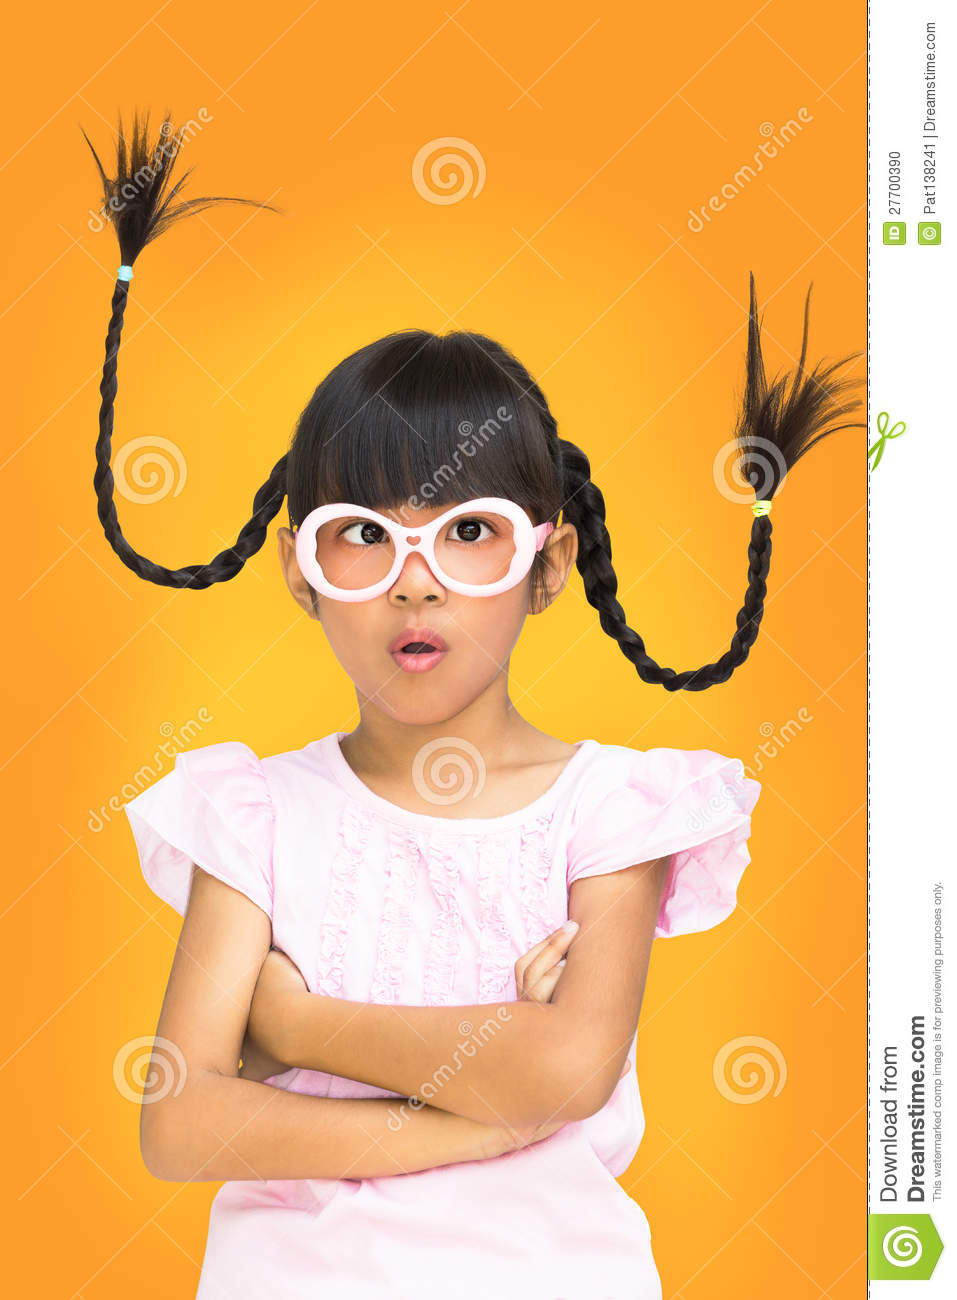 Hair Braids Thailand Portrait Funny Asian Little Girl With Pigtail Hair Stock